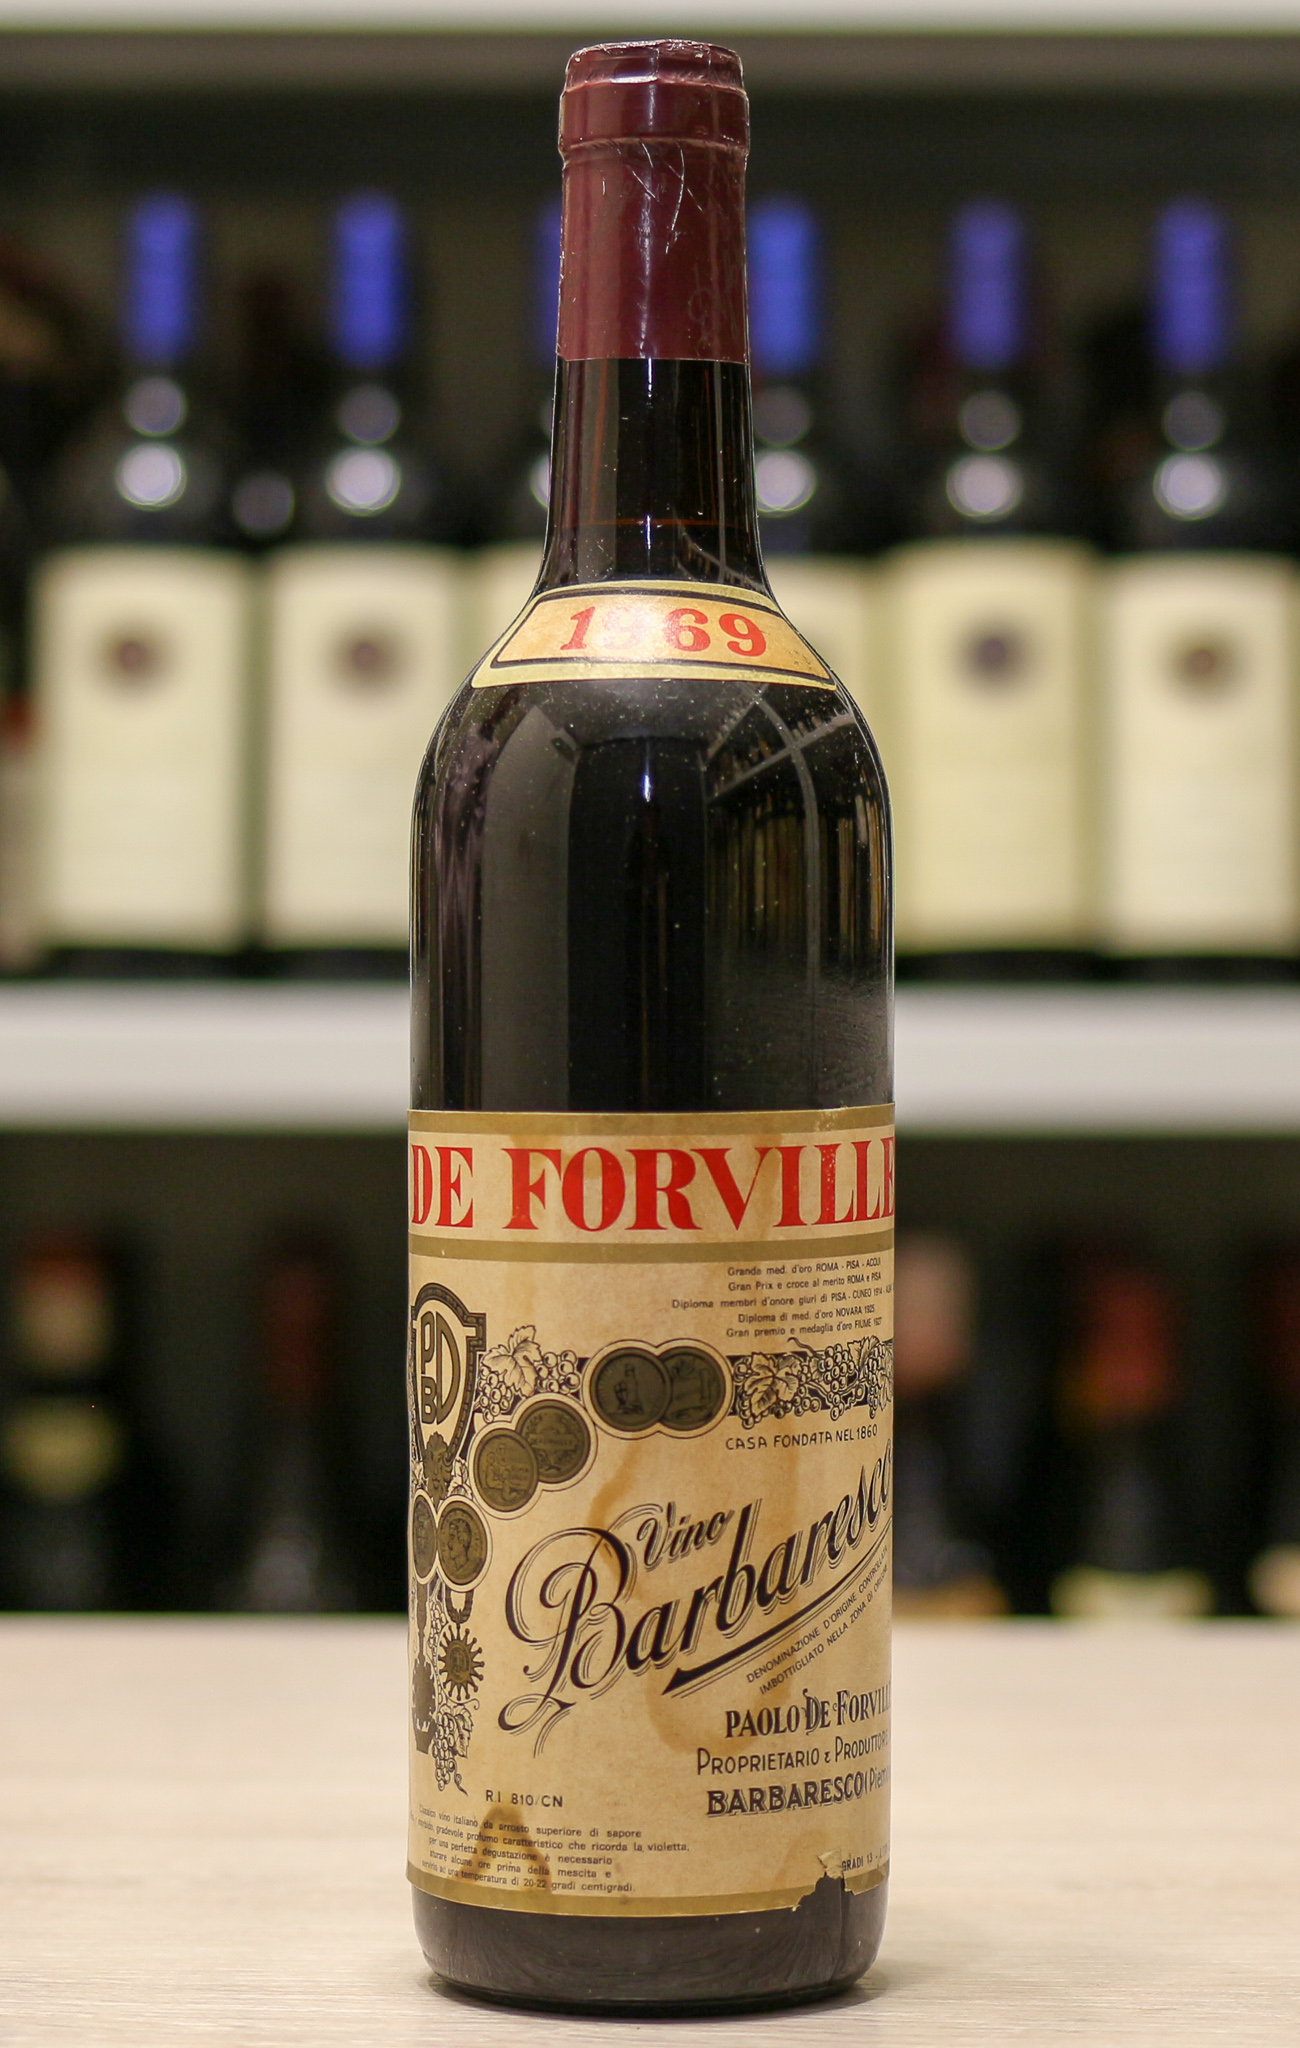 Вино Barbaresco De Forville 1969 года урожая